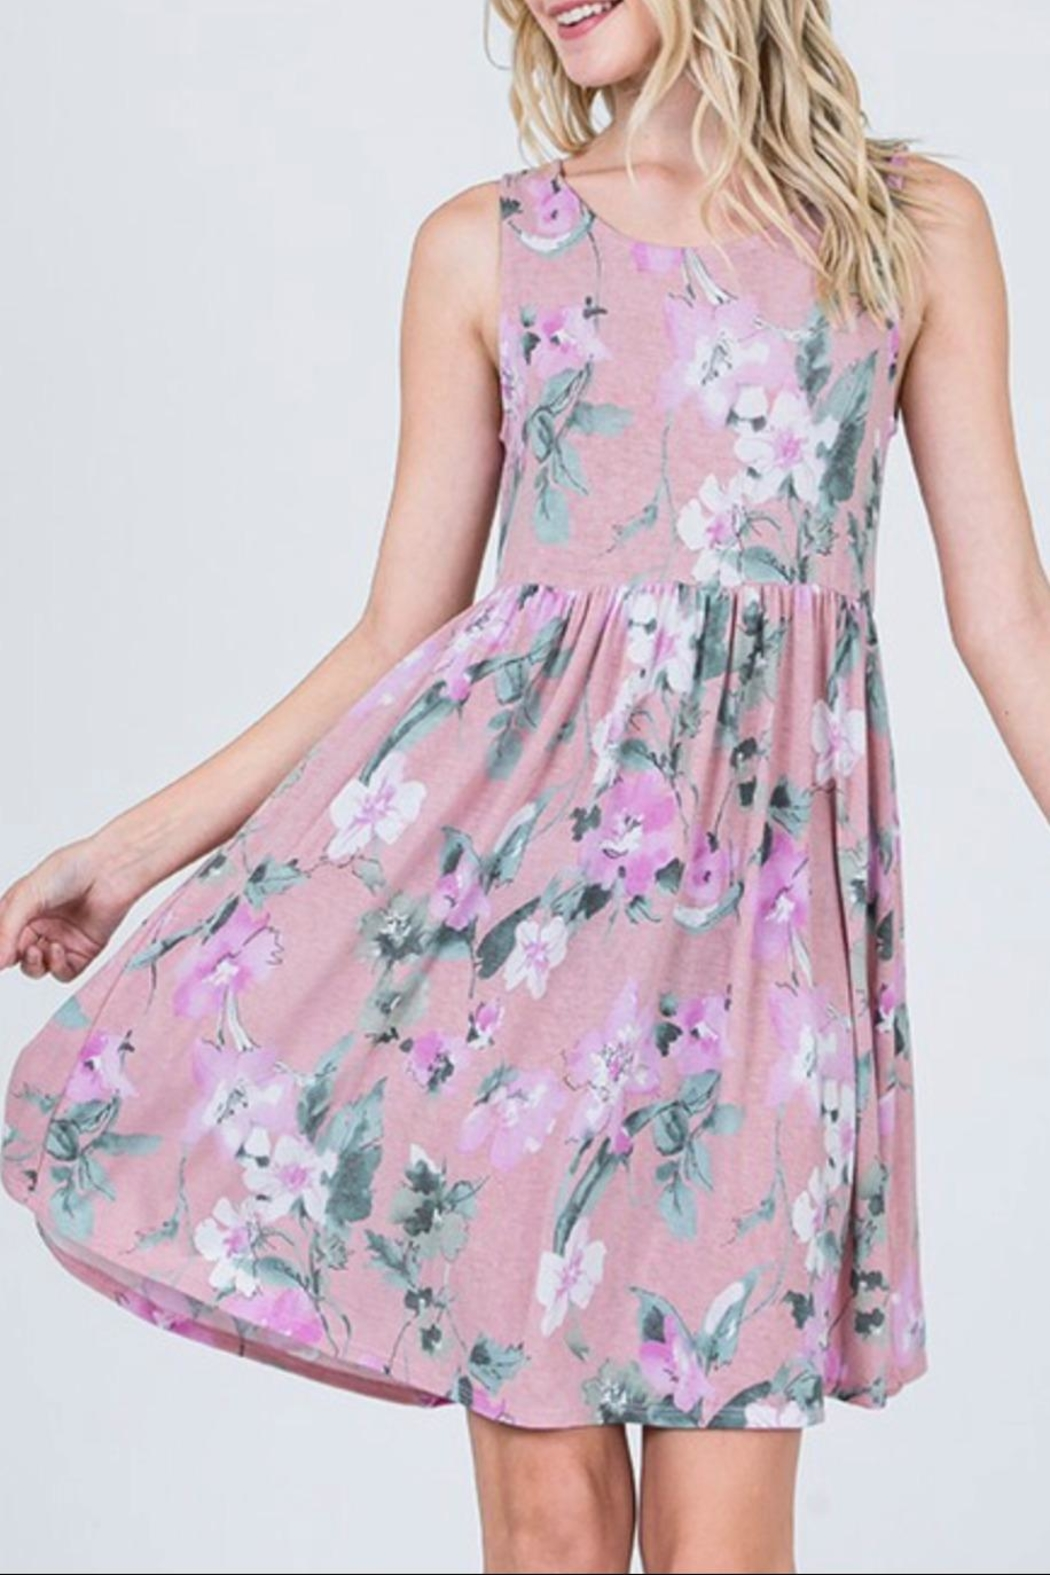 CY Fashion Lavender Floral Dress - Main Image